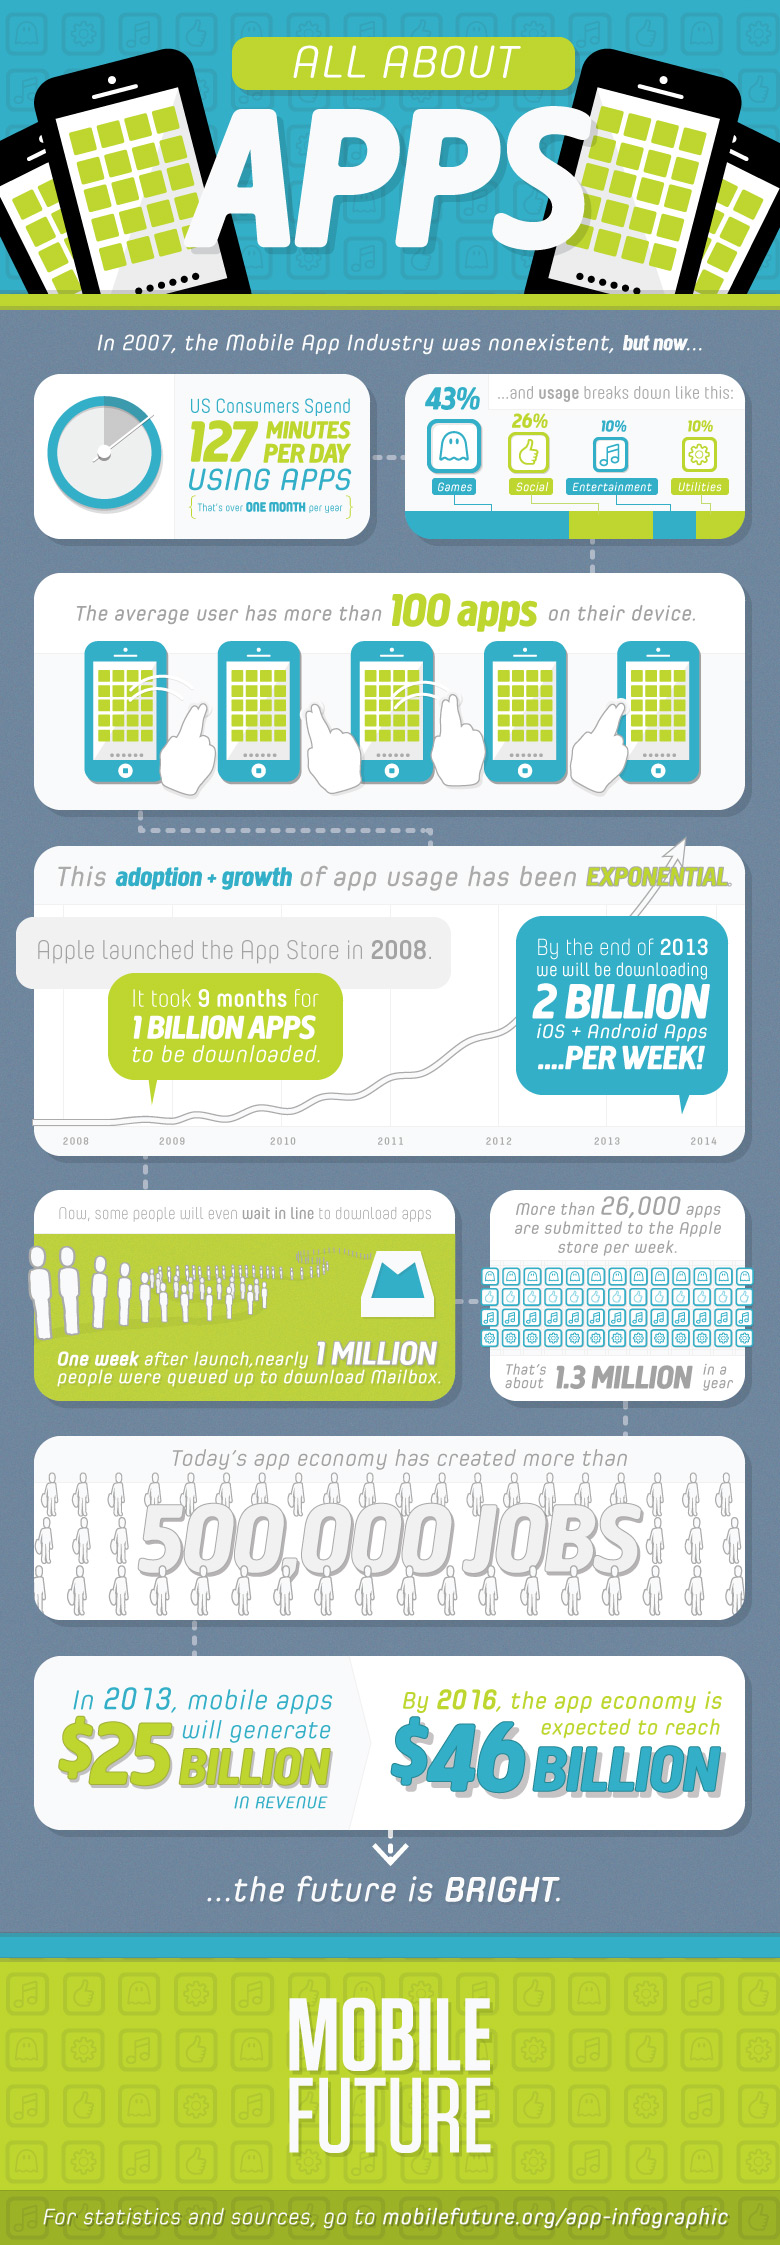 All About Mobile Apps